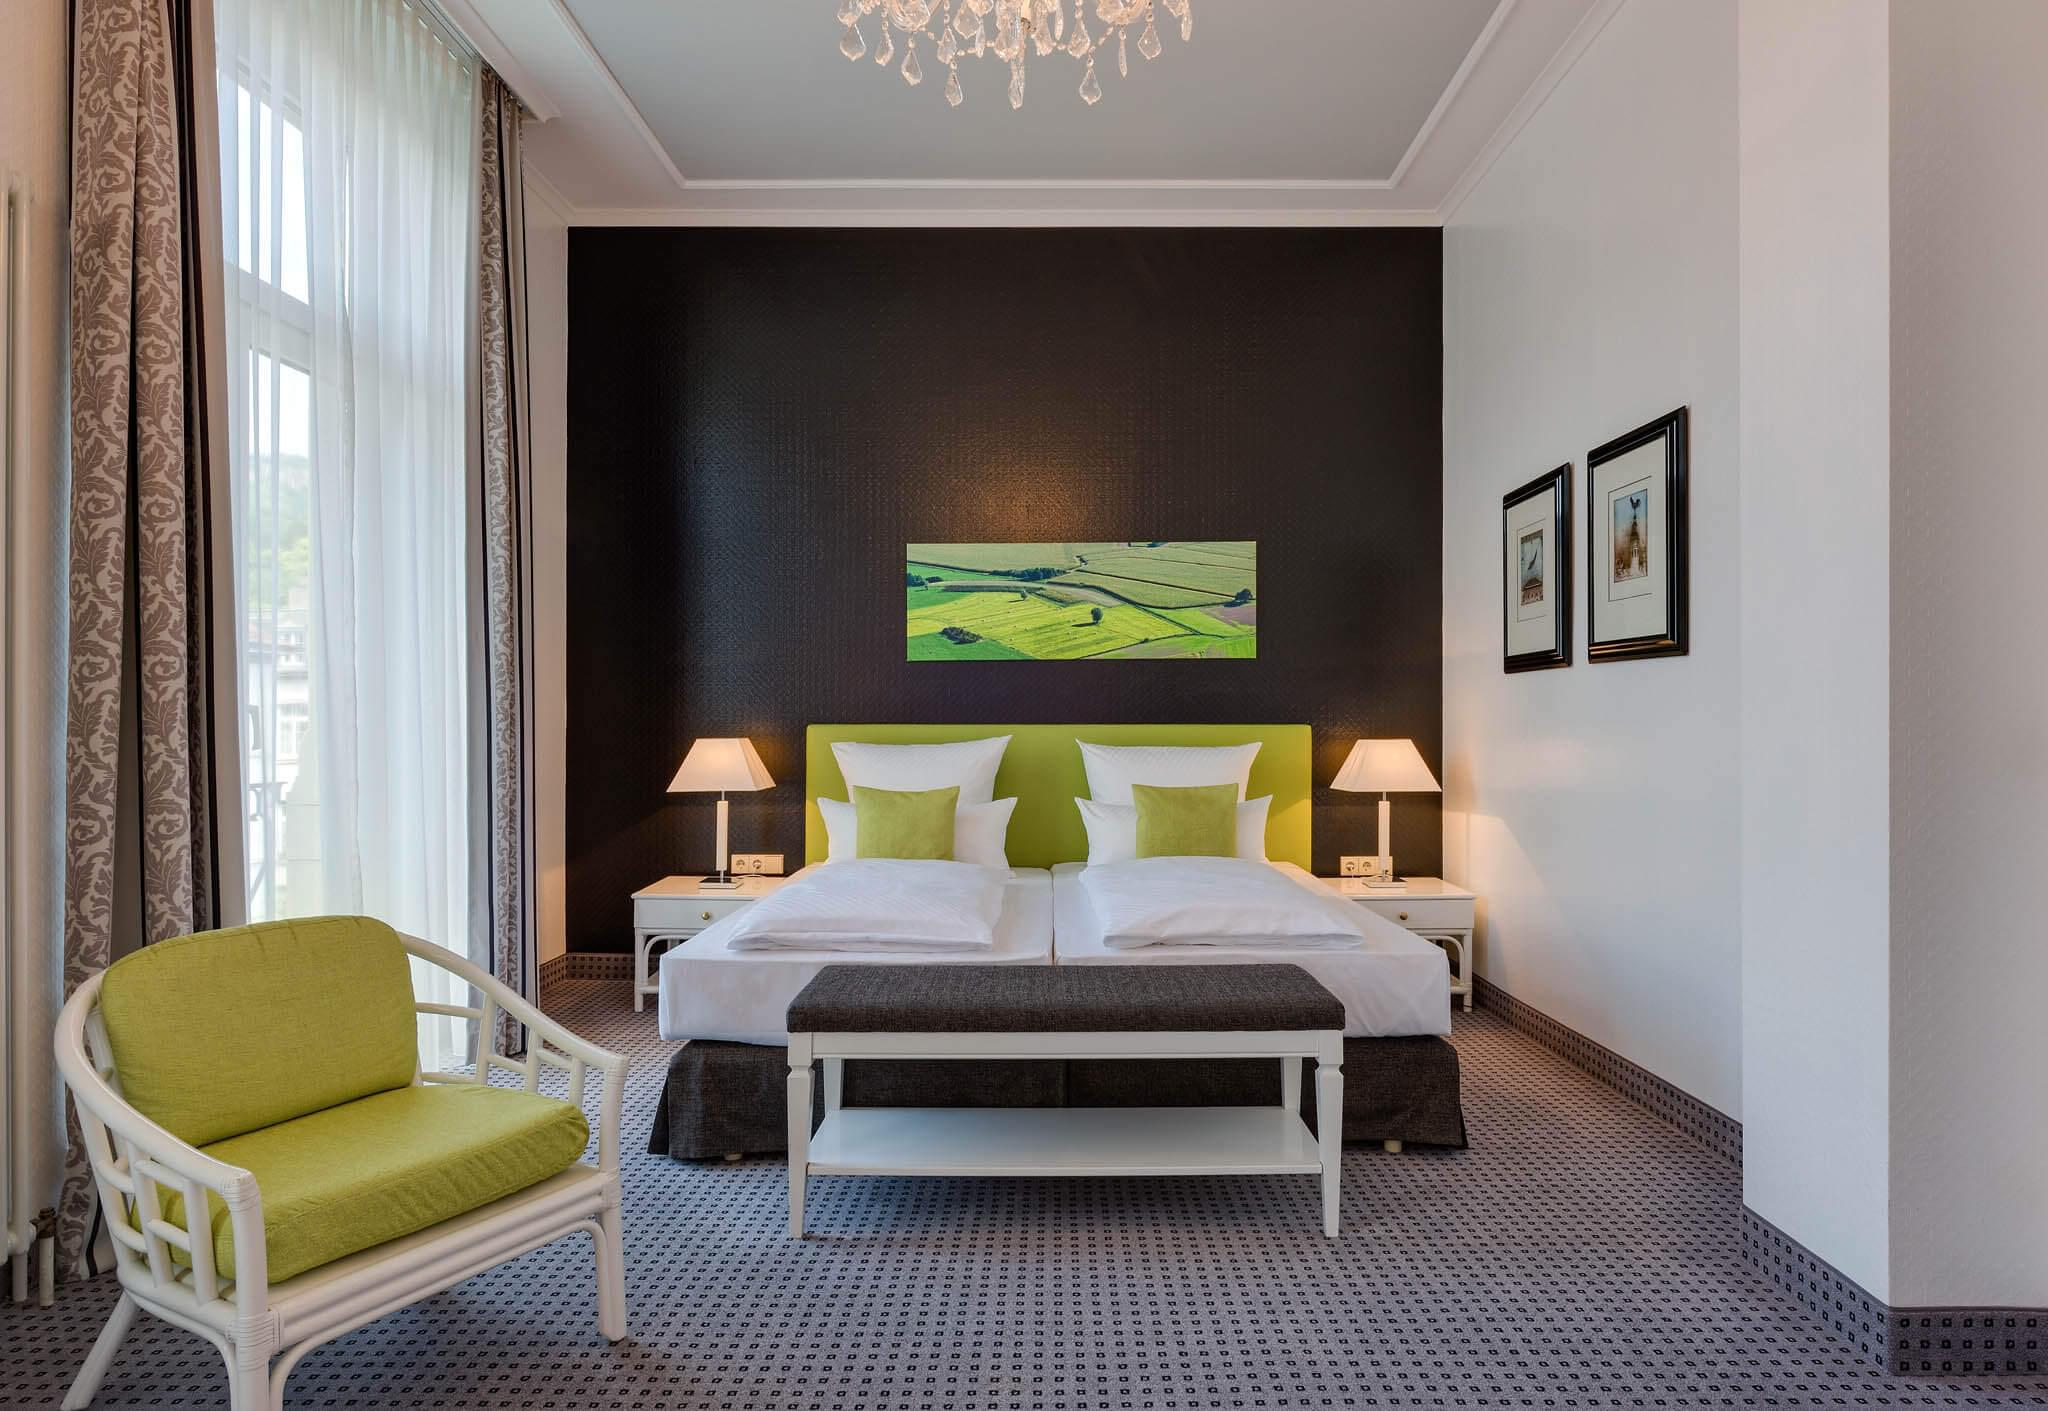 Business rooms baden-baden, Business – Boulevard, Hotel am Sophienpark, Hotel am Sophienpark